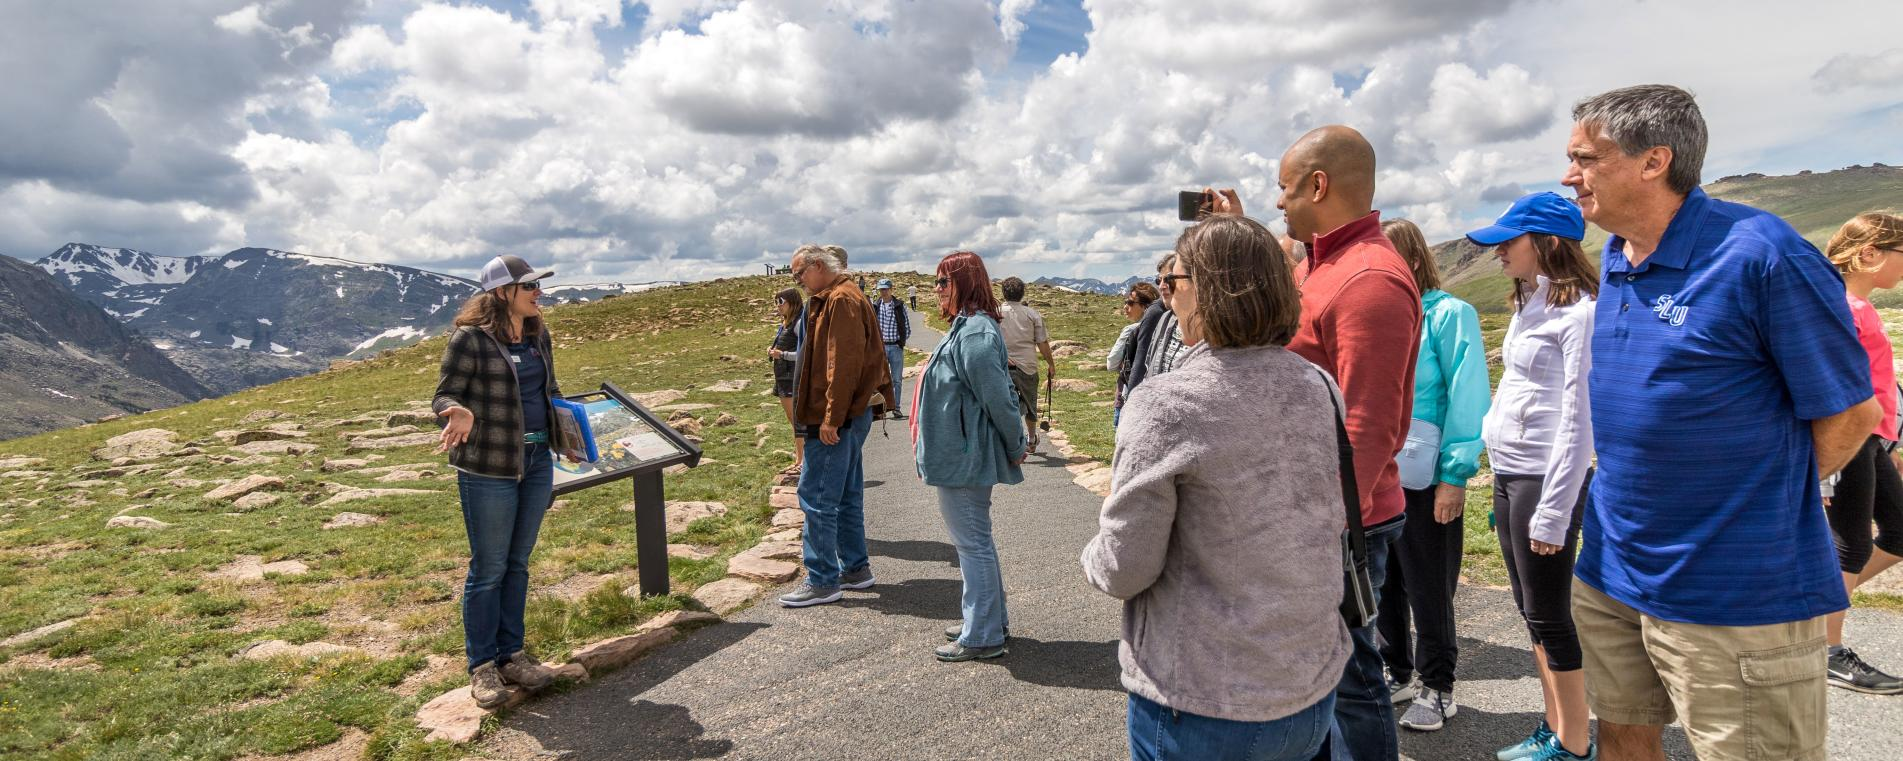 rocky mountain conservancy guided tour